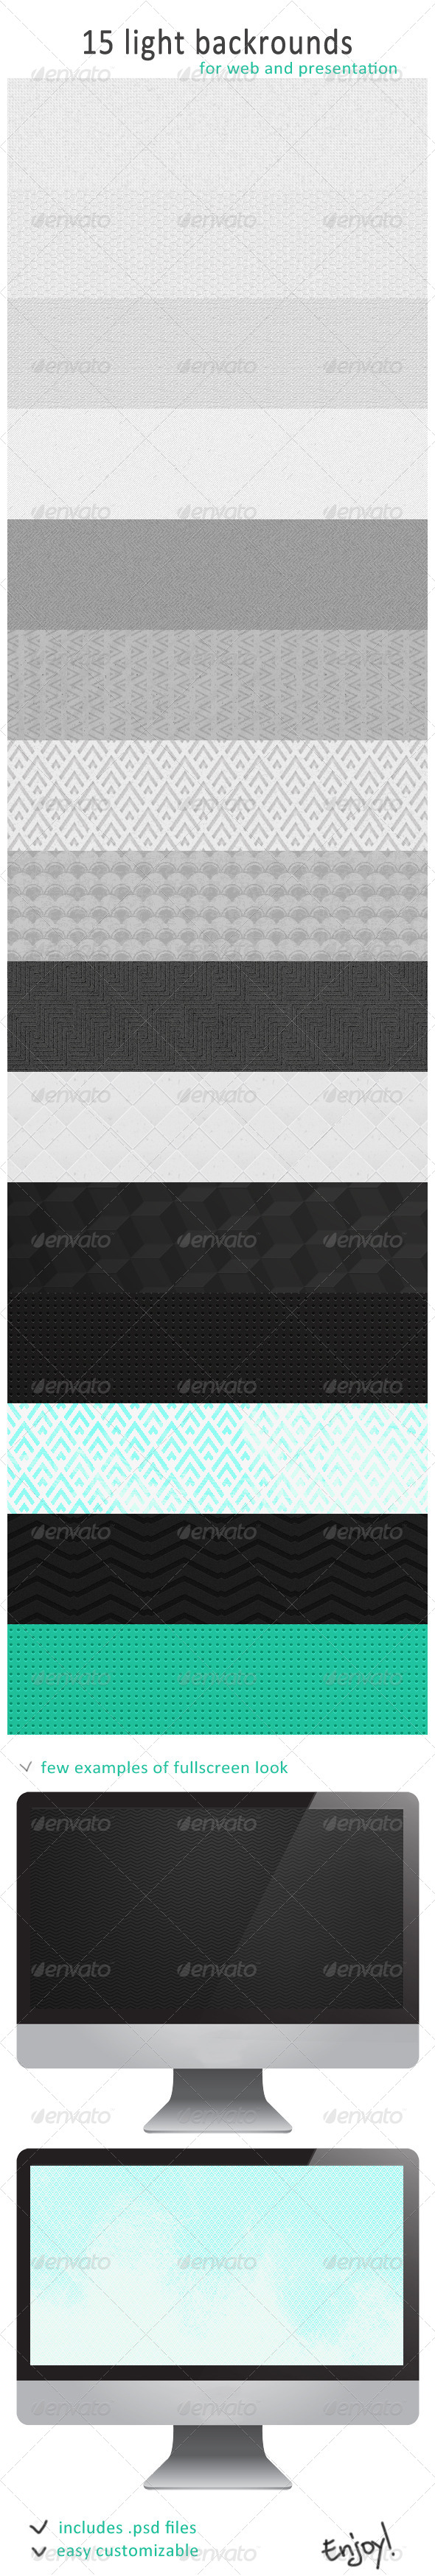 GraphicRiver 15 Light Backgrounds 4732245